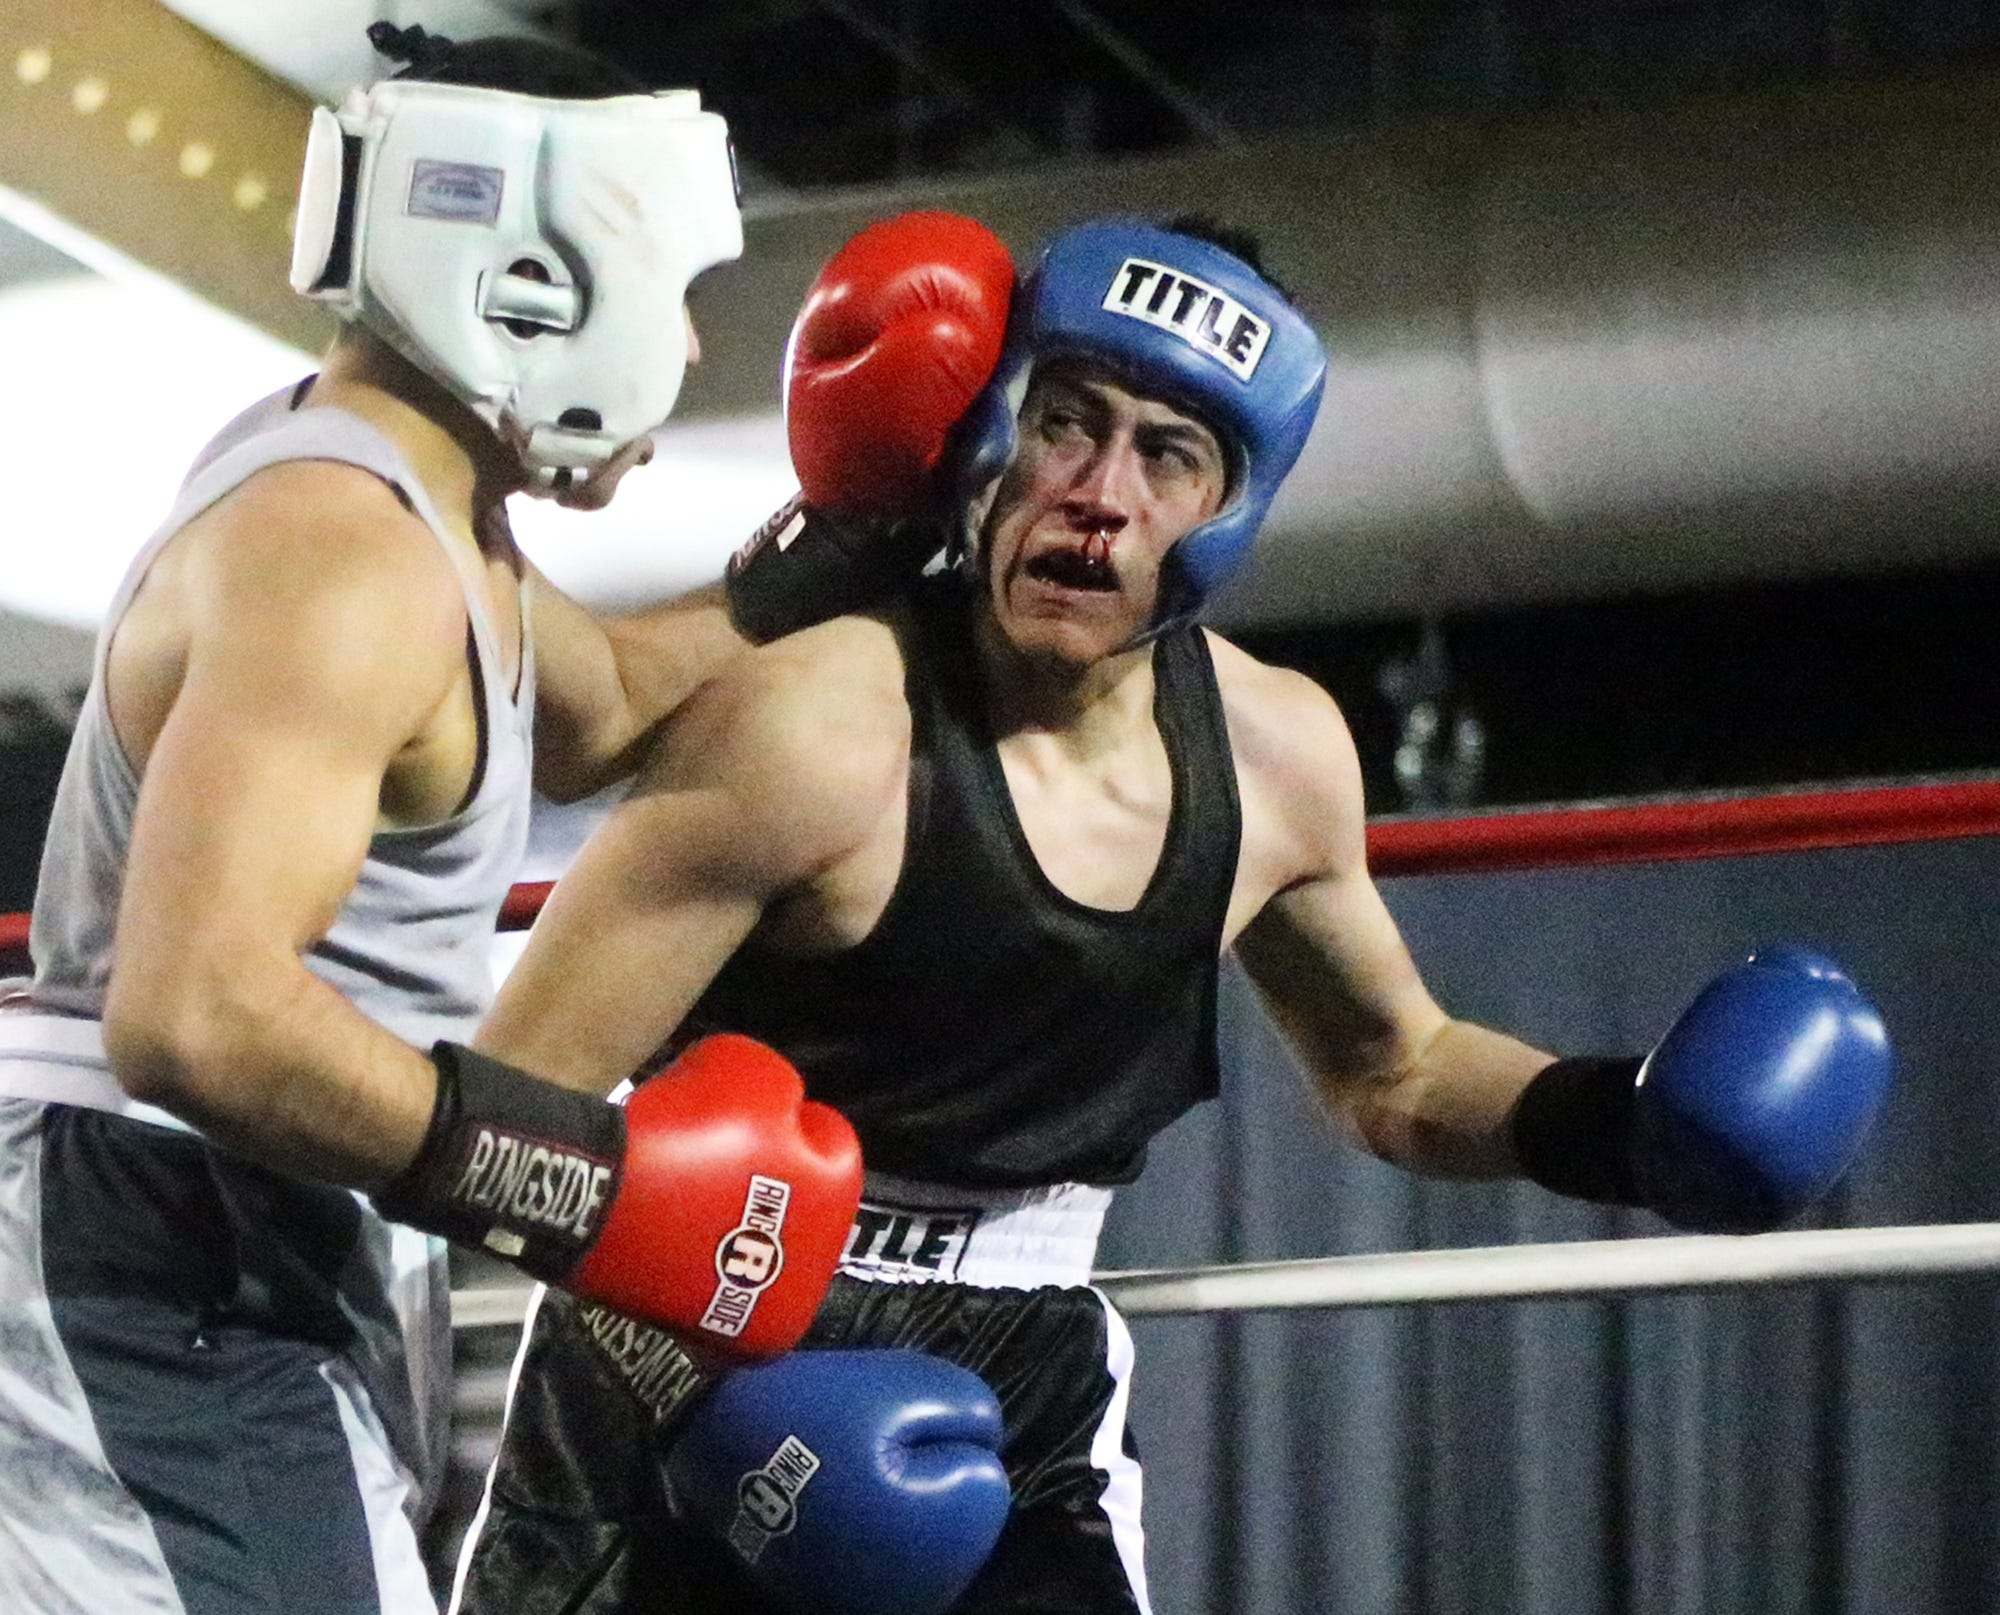 Boxer pounded by coach